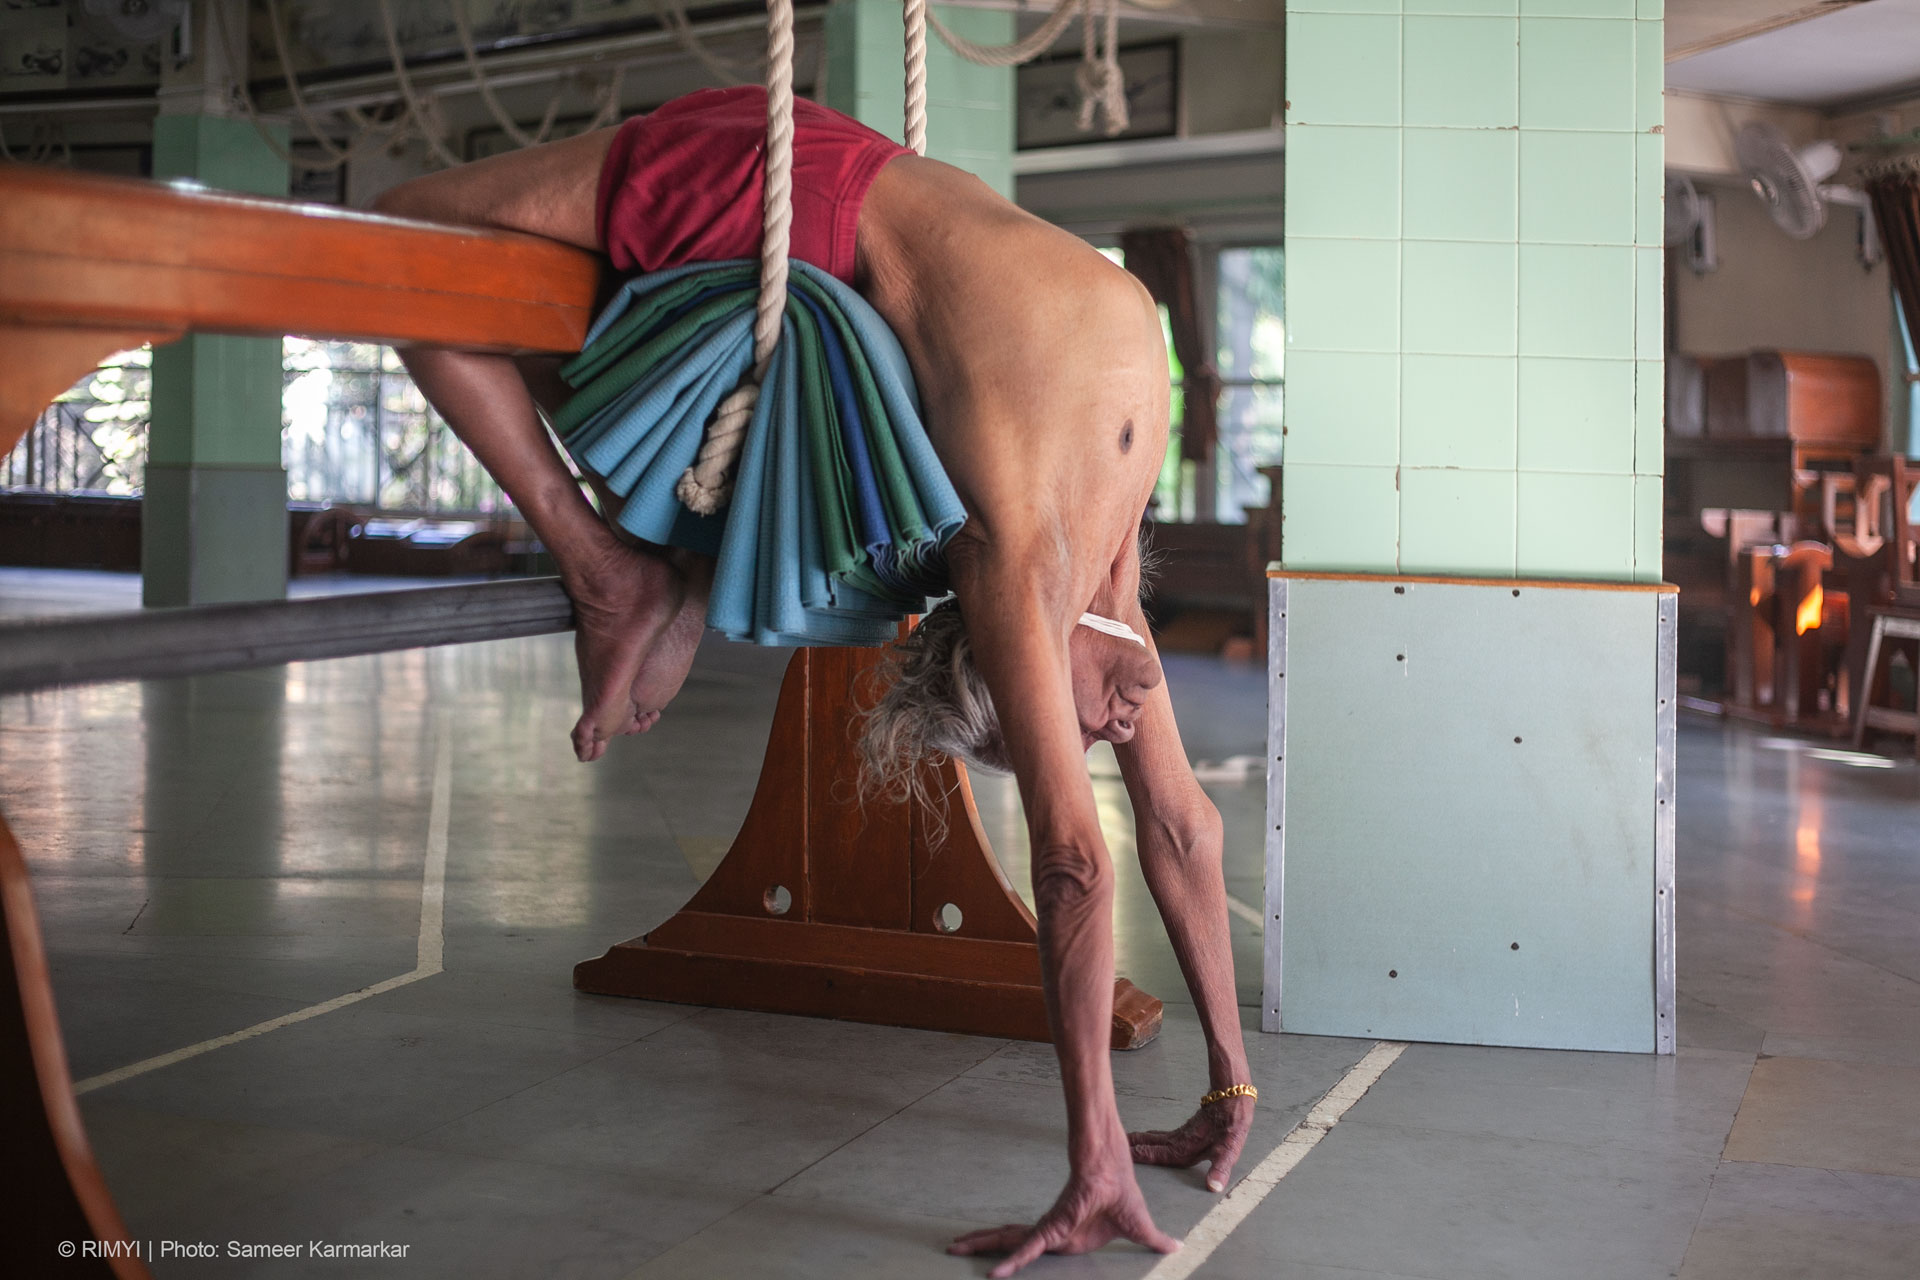 Iyengar was the first to introduce props like wooden bricks, benches, belts, and ropes into yoga.